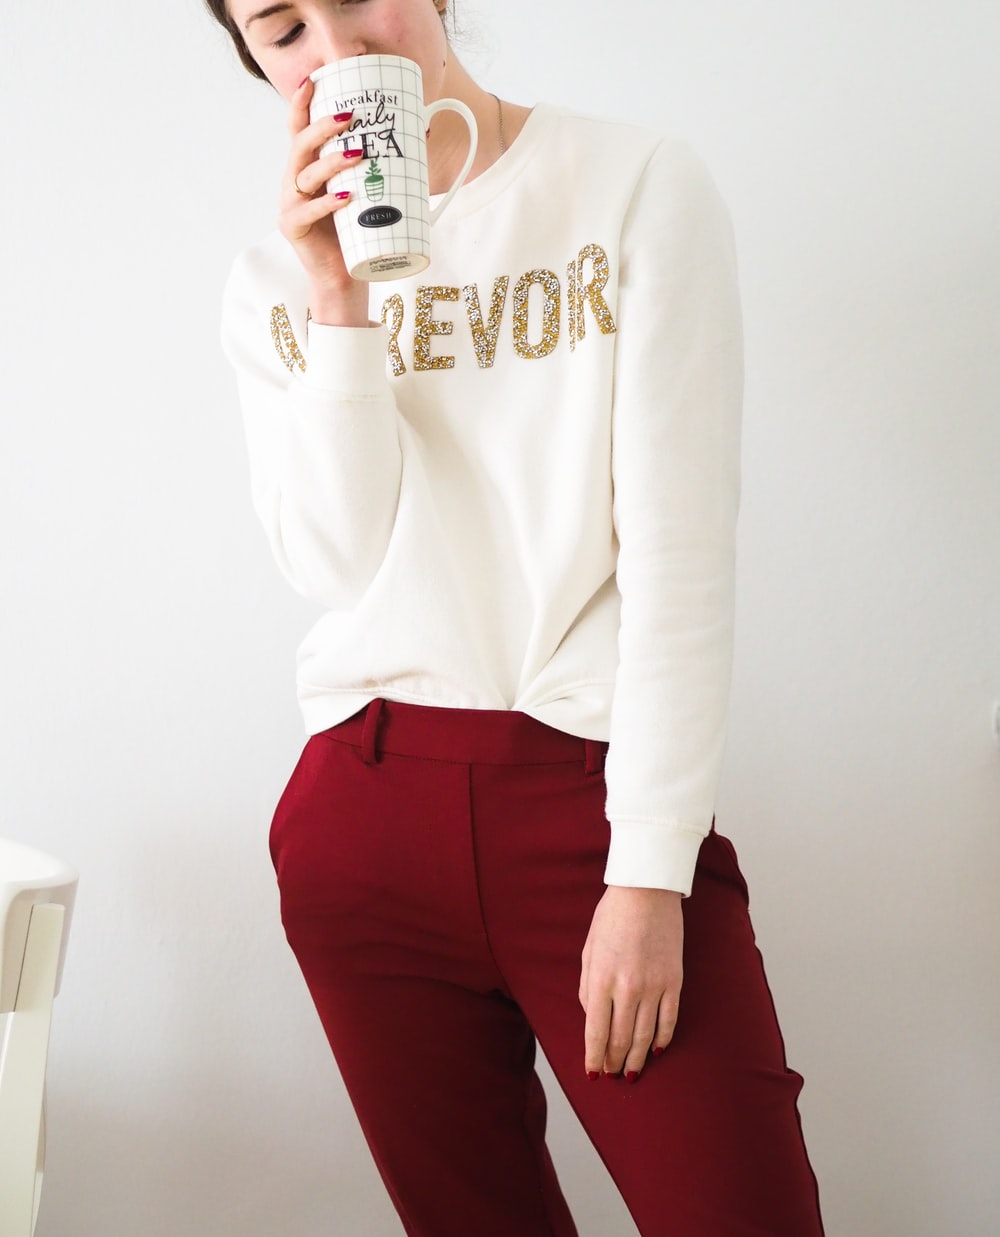 woman in white long sleeve shirt and red pants holding white ceramic mug